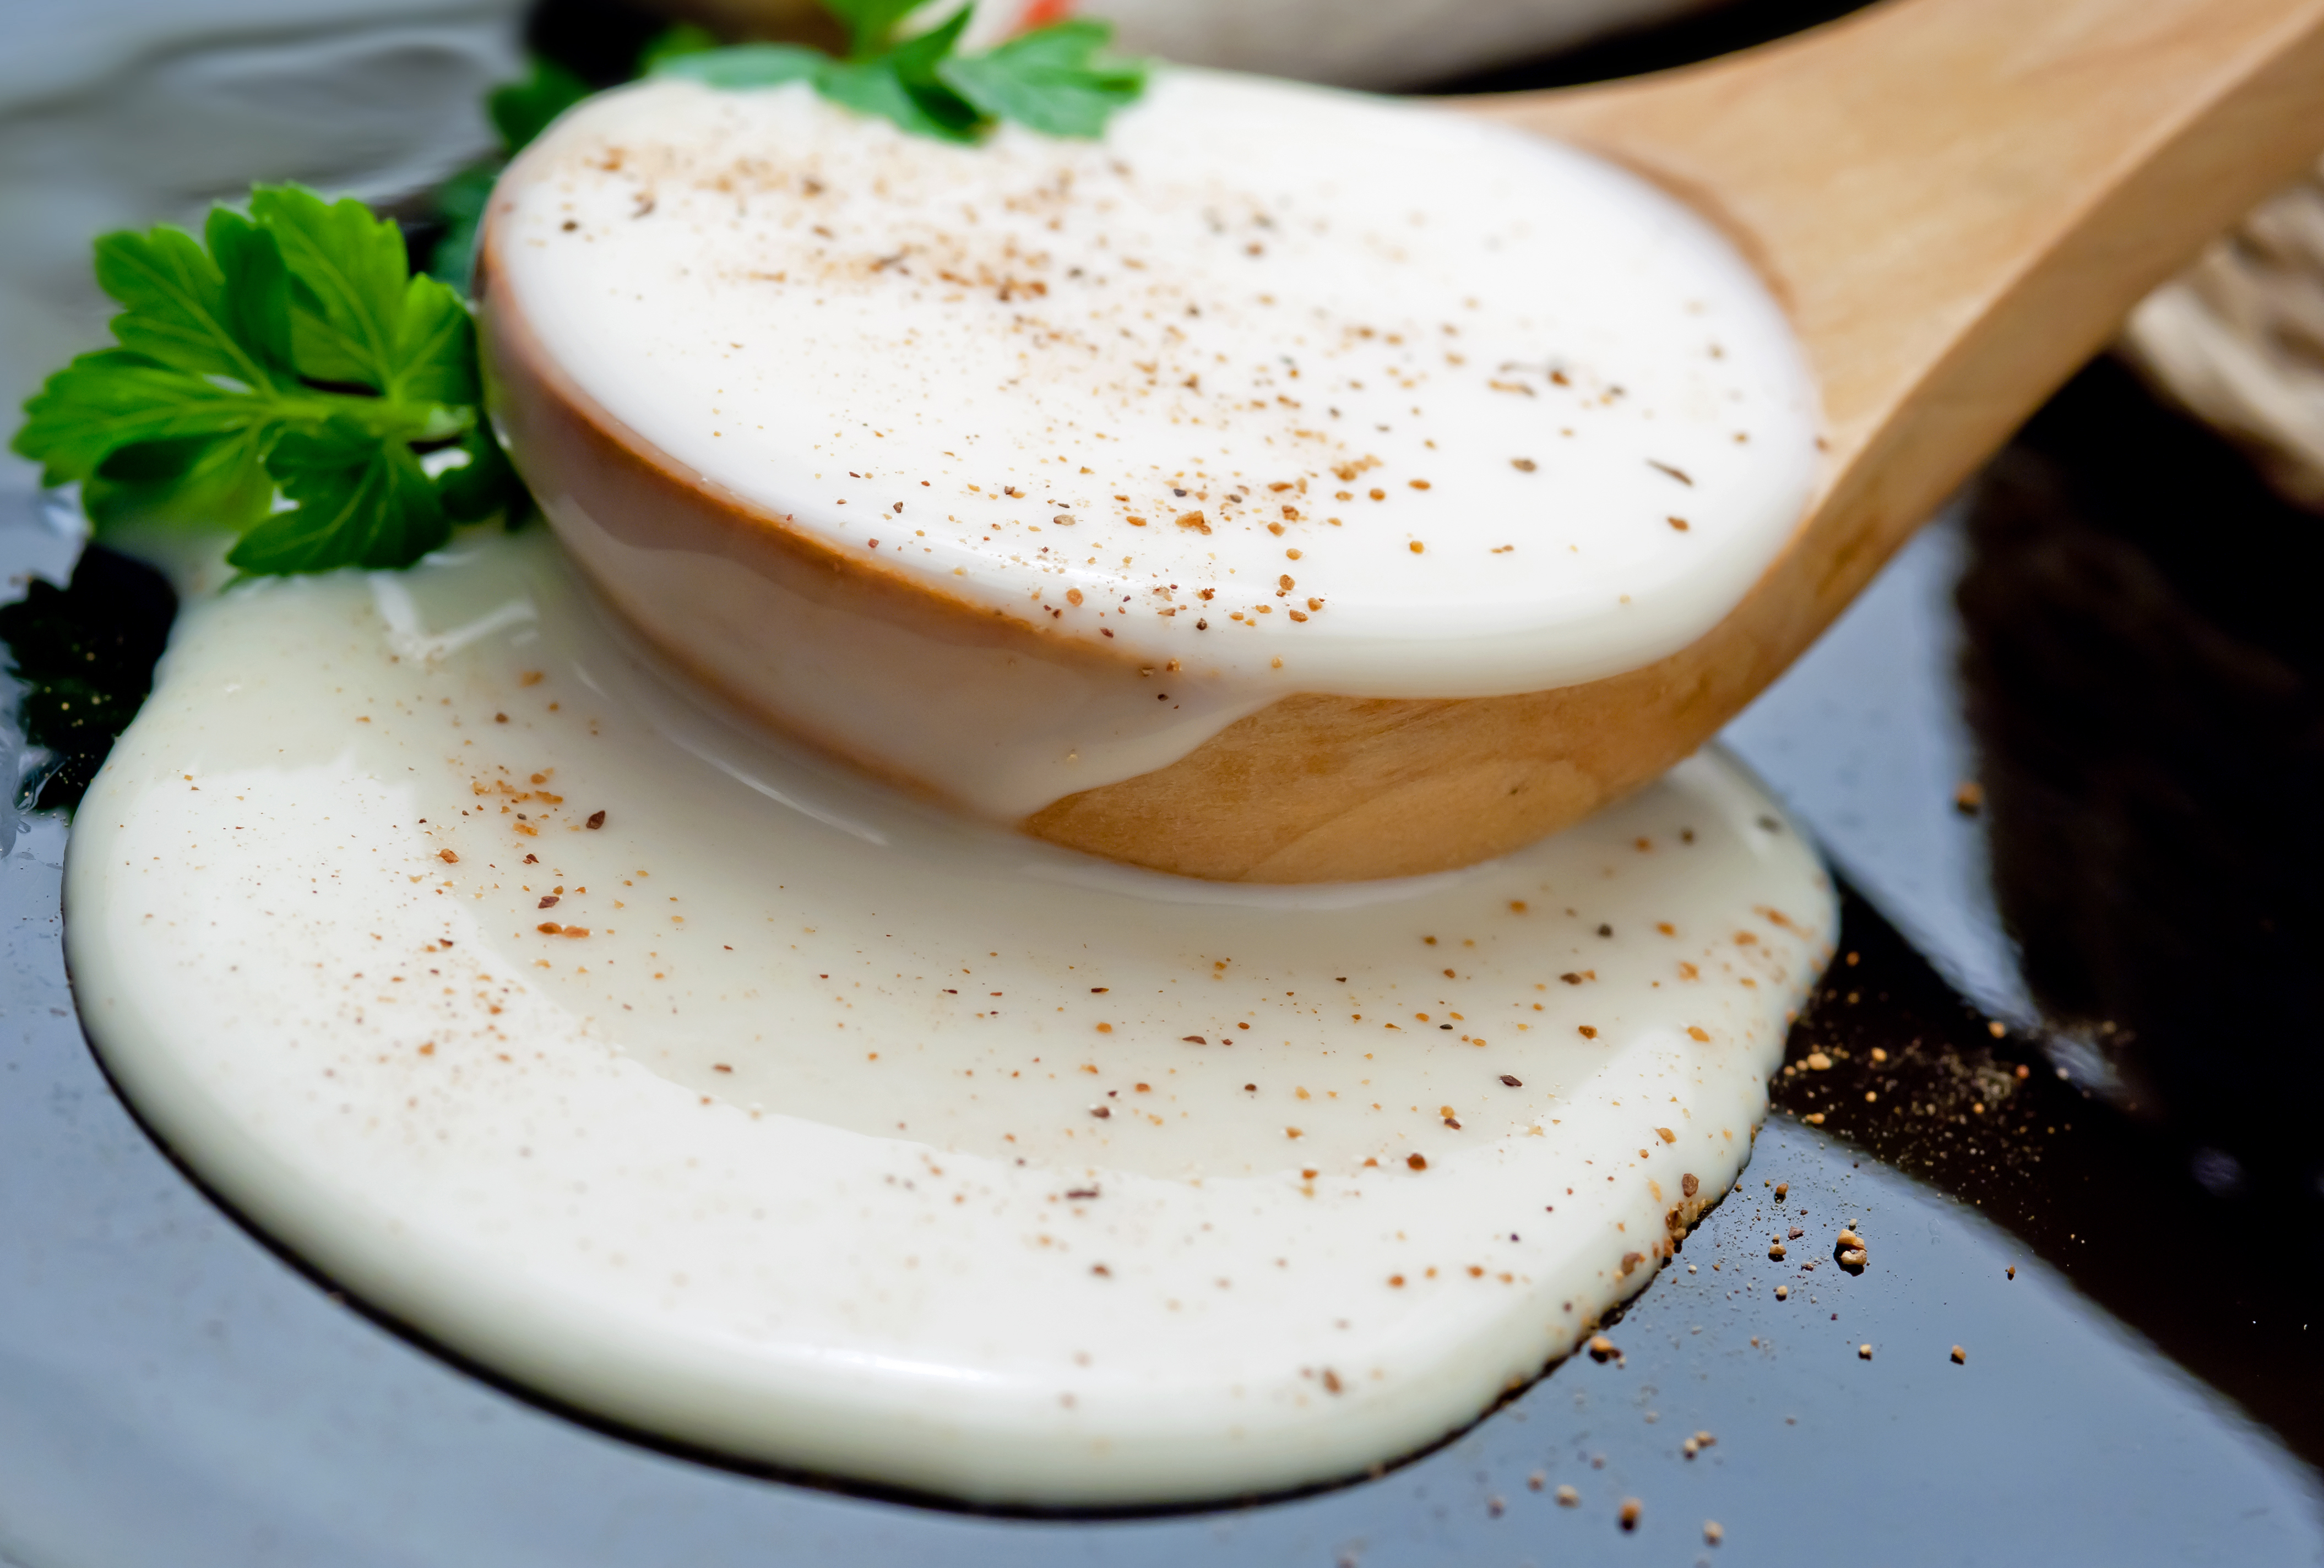 Closeup of bechamel sauce in a wooden spoon